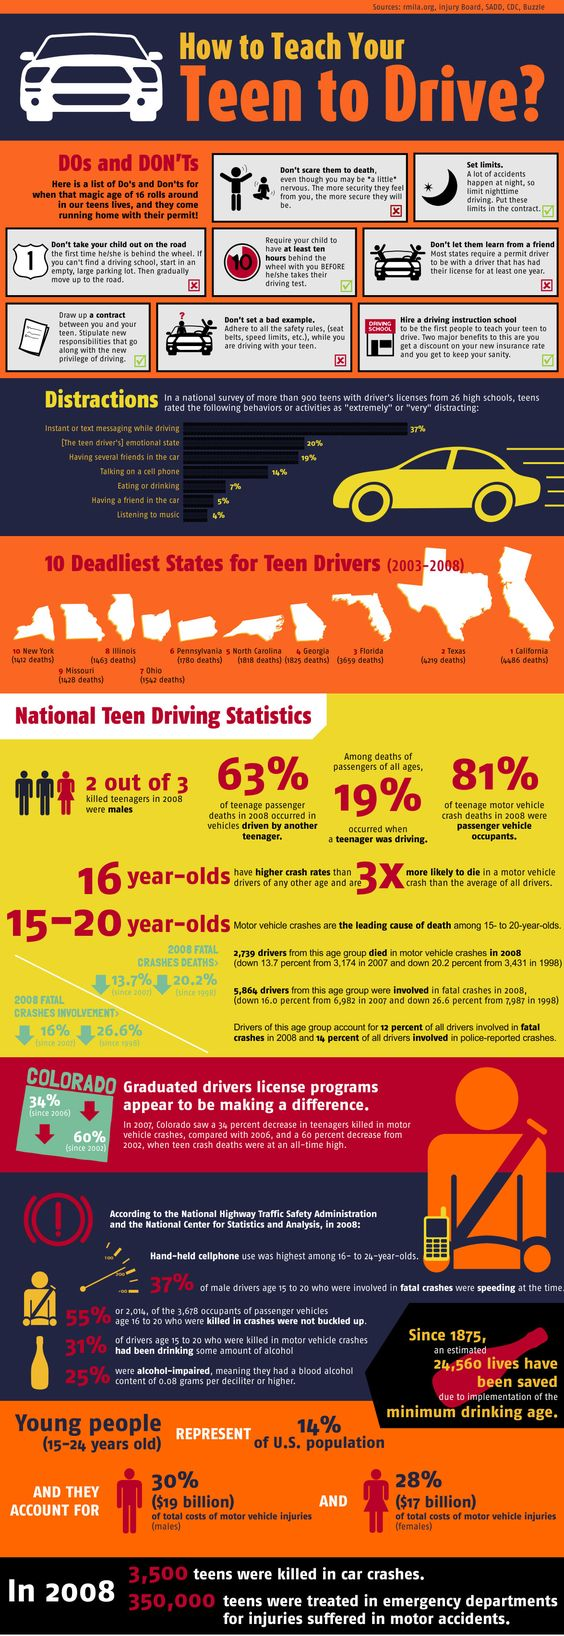 This infographic shows how to teach your teen to drive